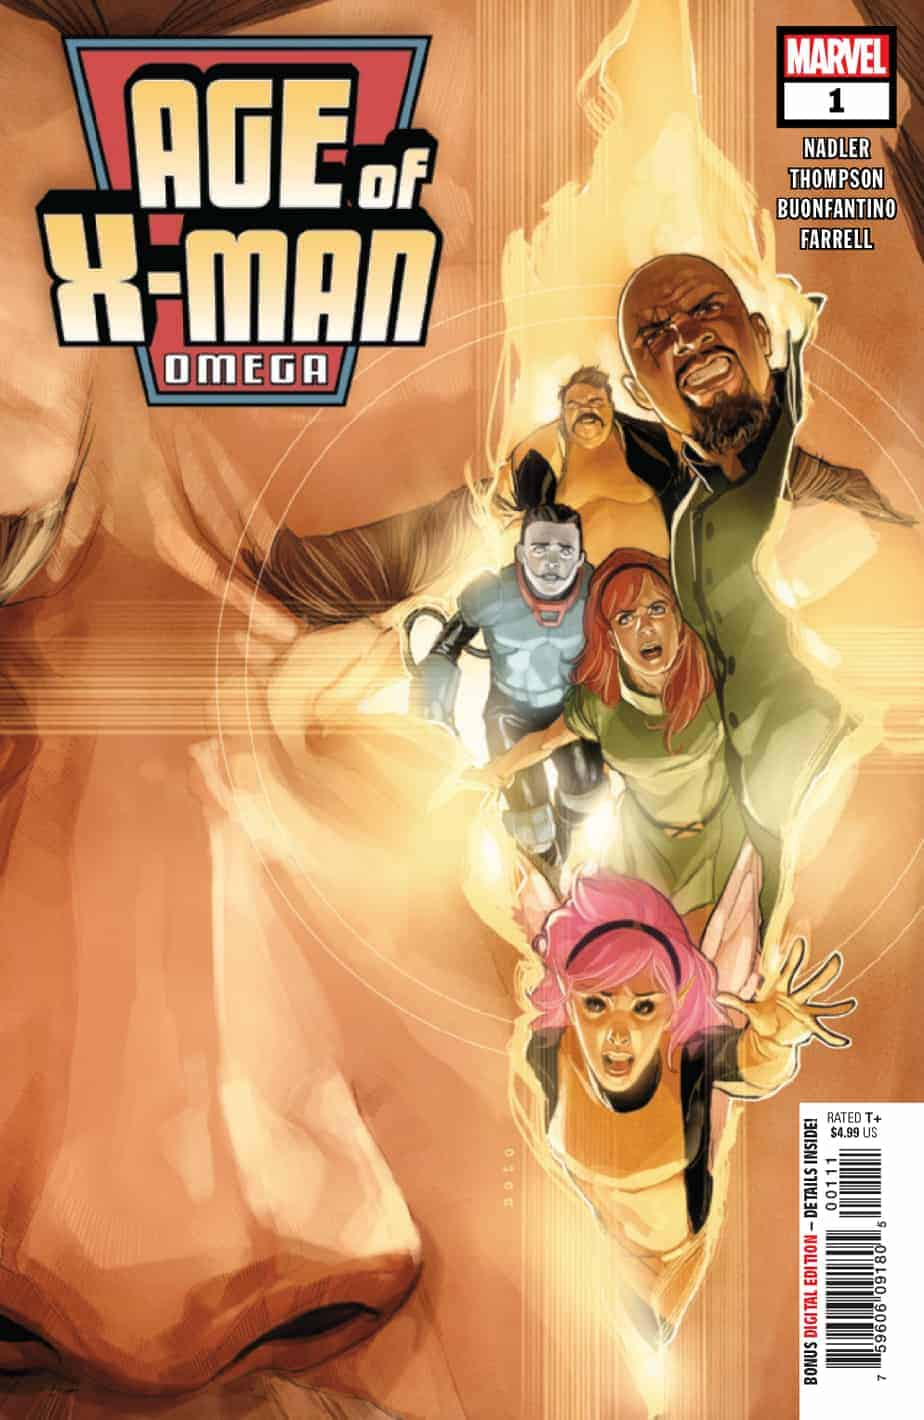 Age of X-Man: Omega #1 - Cover A